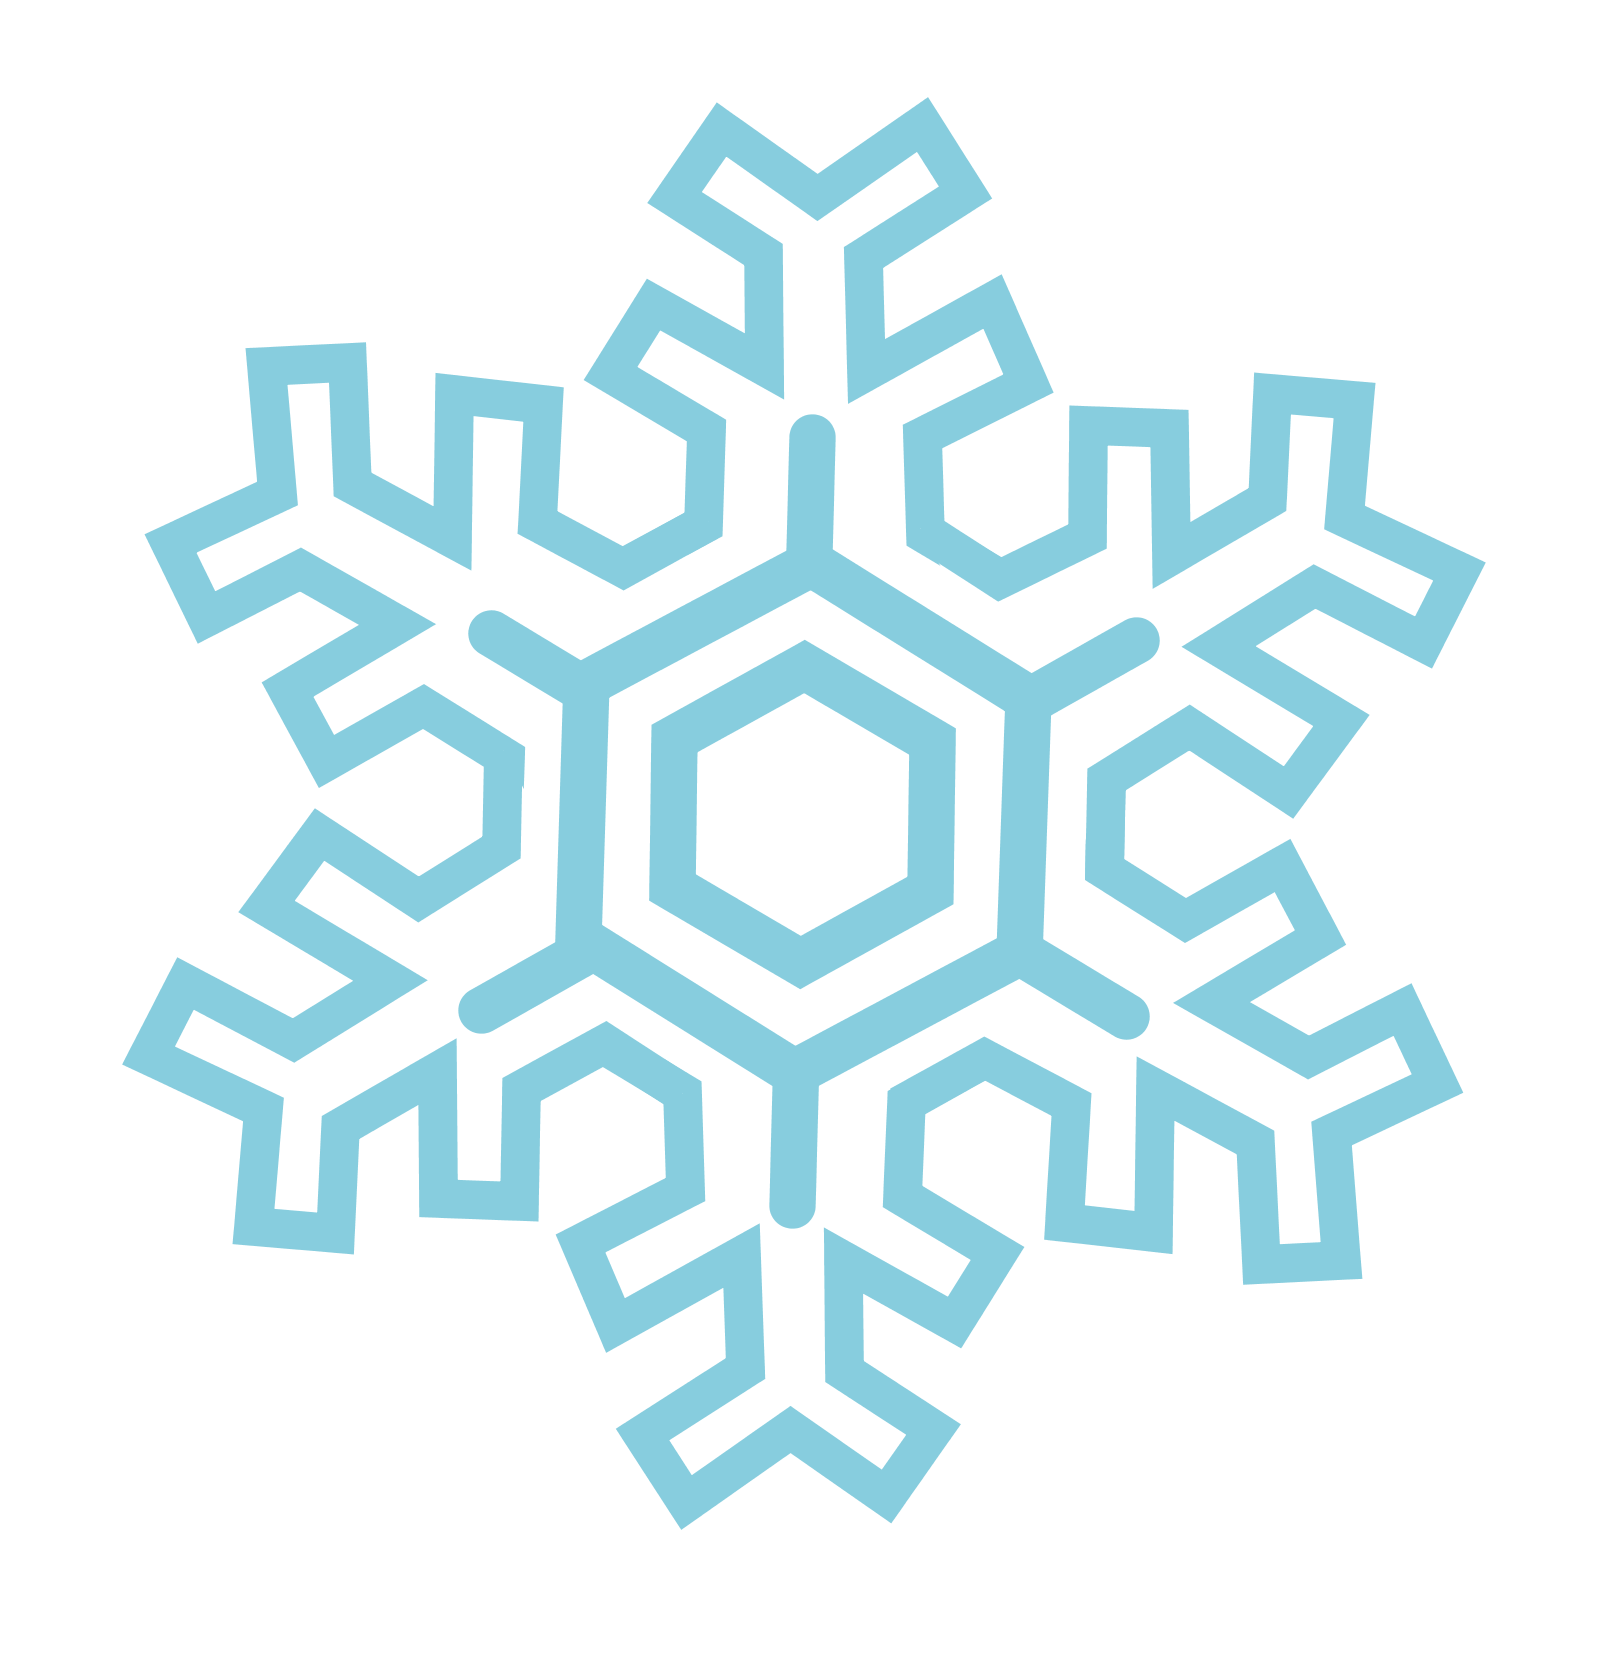 image Ice clipart. Image snowflake png lumber.